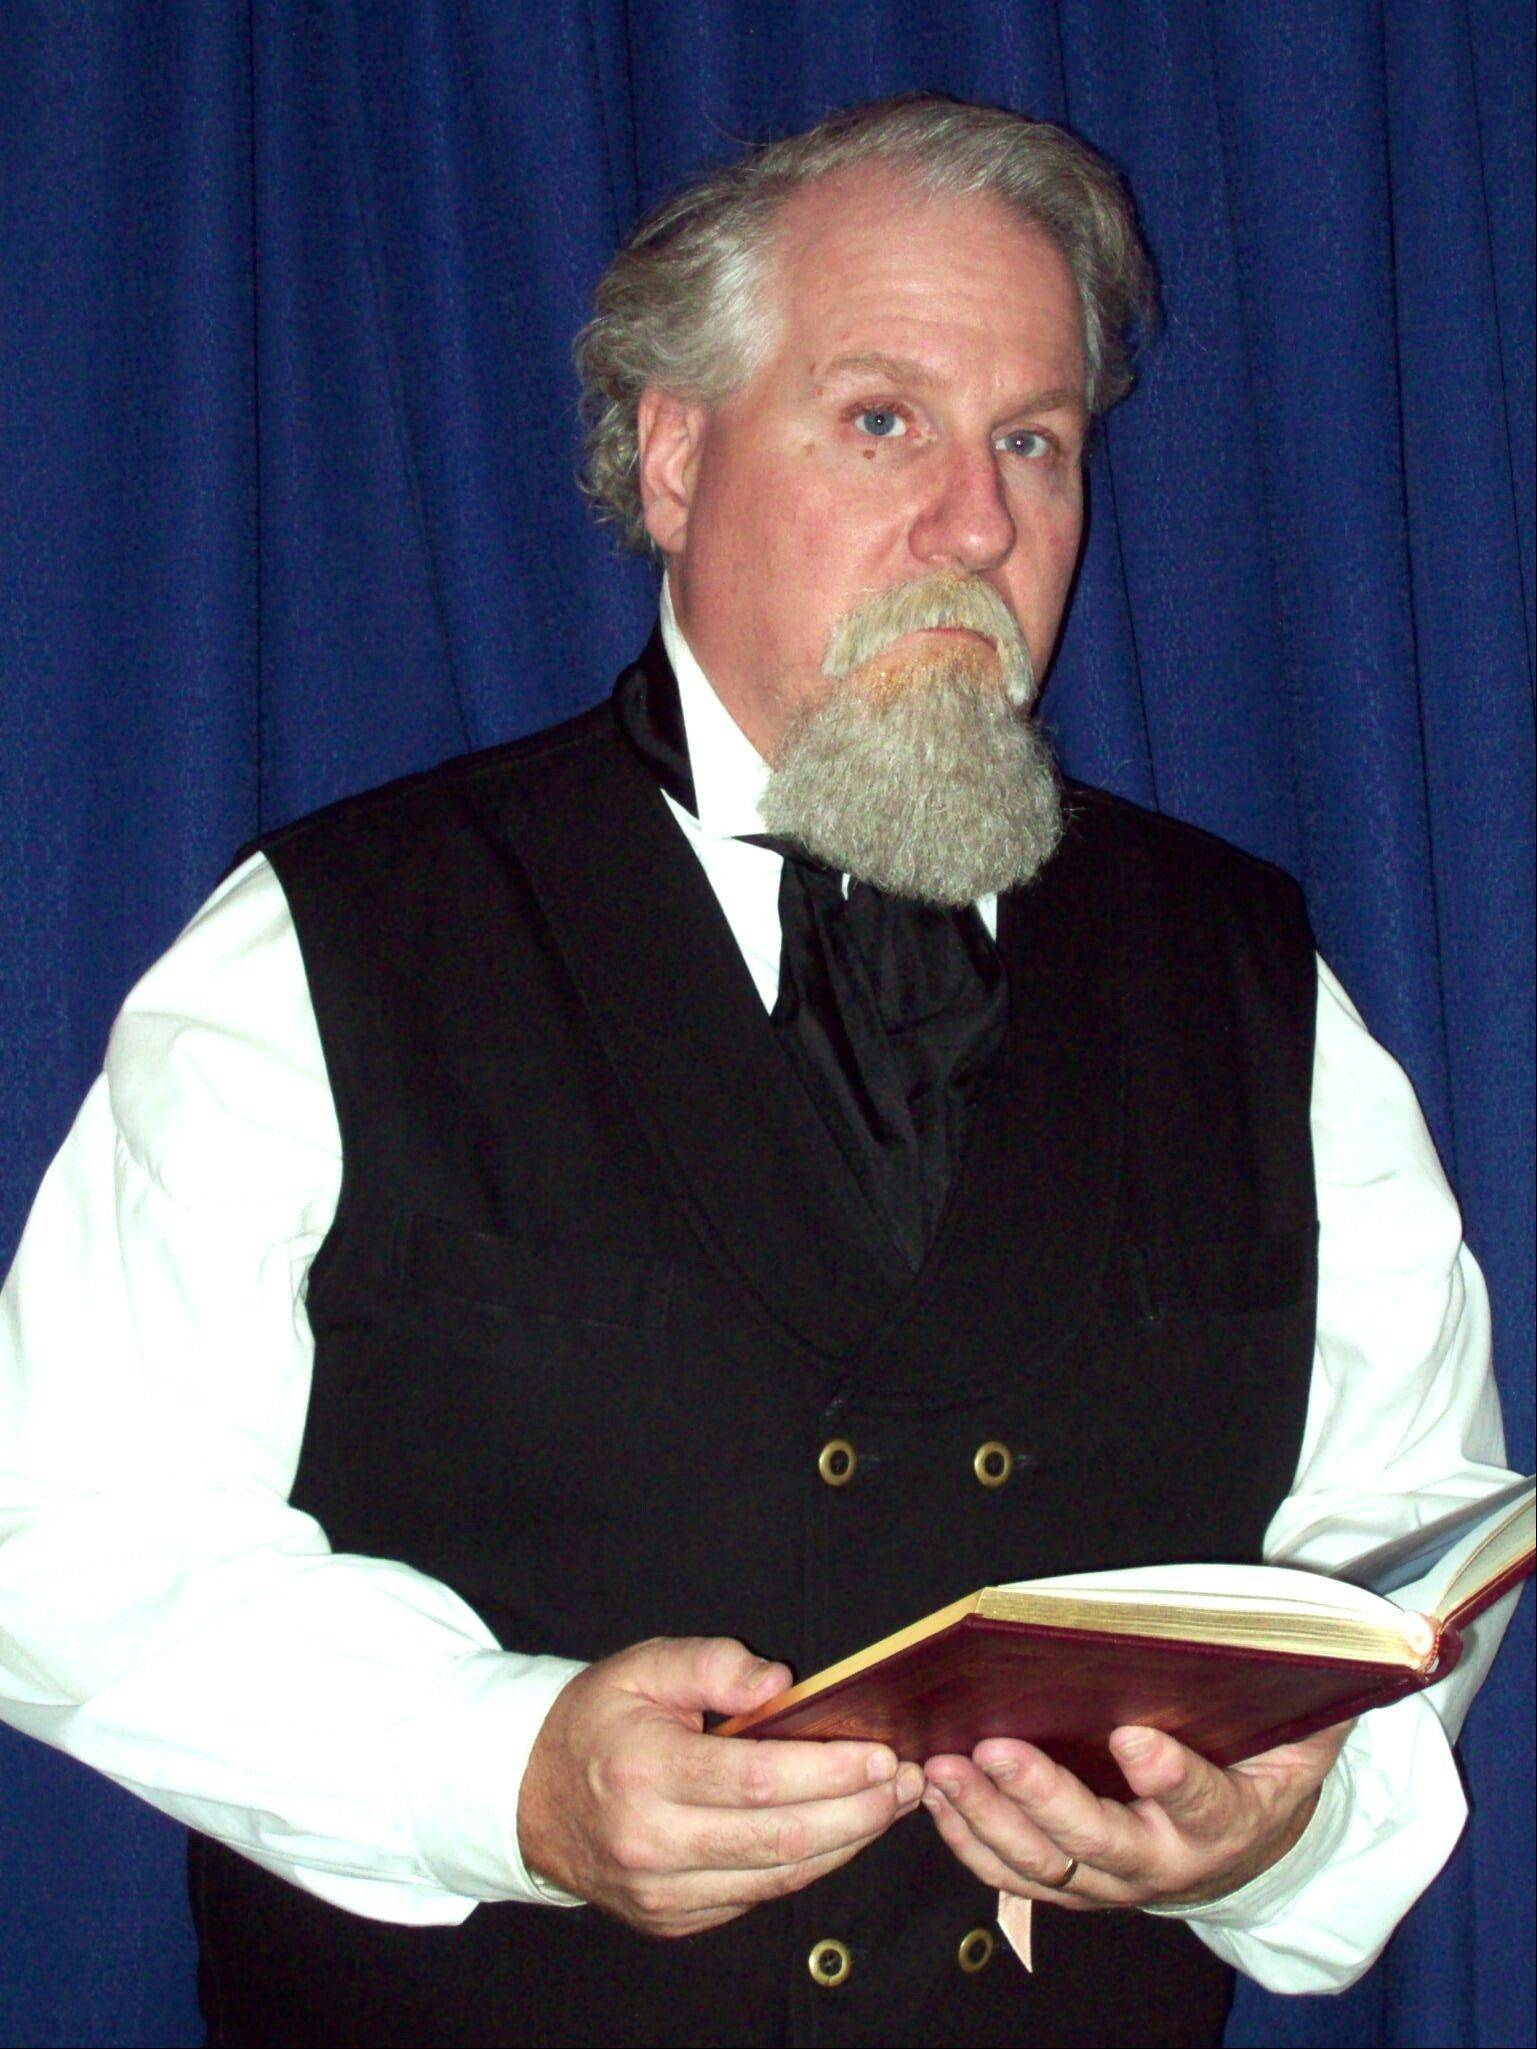 Actor Terry Lynch brings Charles Dickens' Christmas tales to life Dec. 9 at the Elmhurst Historical Museum Education Center.